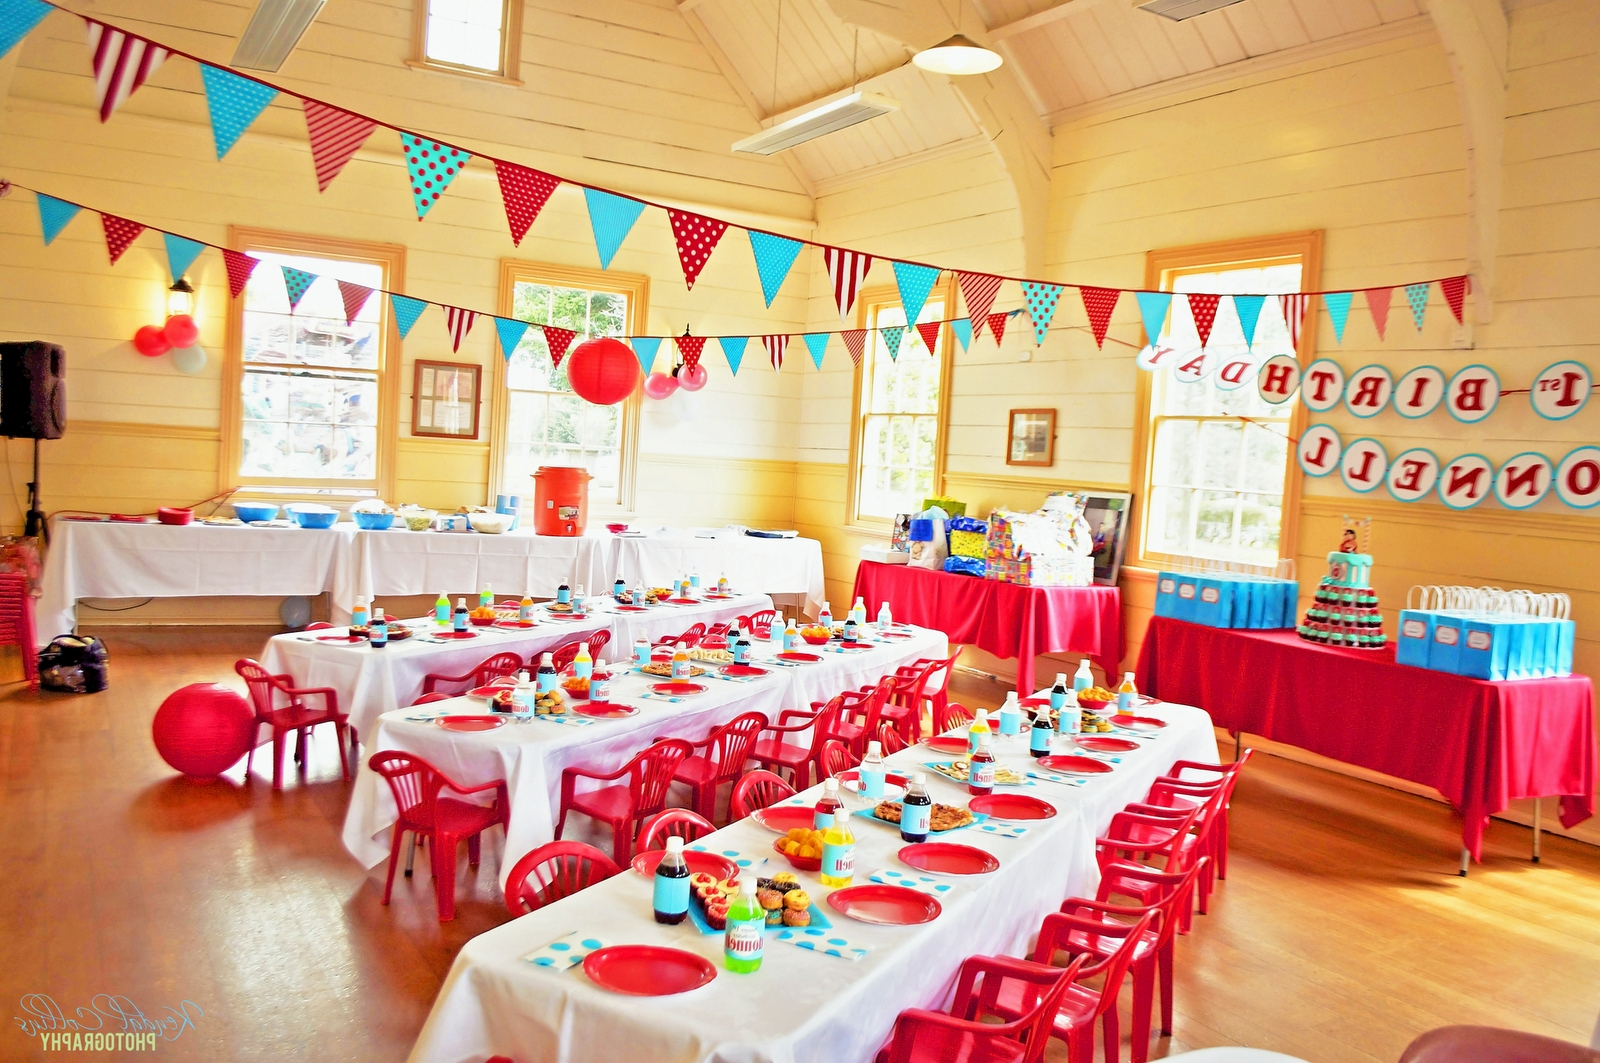 10 Stunning 9 Year Old Boy Birthday Party Ideas ideas for boy birthday party at home 9 year old boy birthday party 9 2020